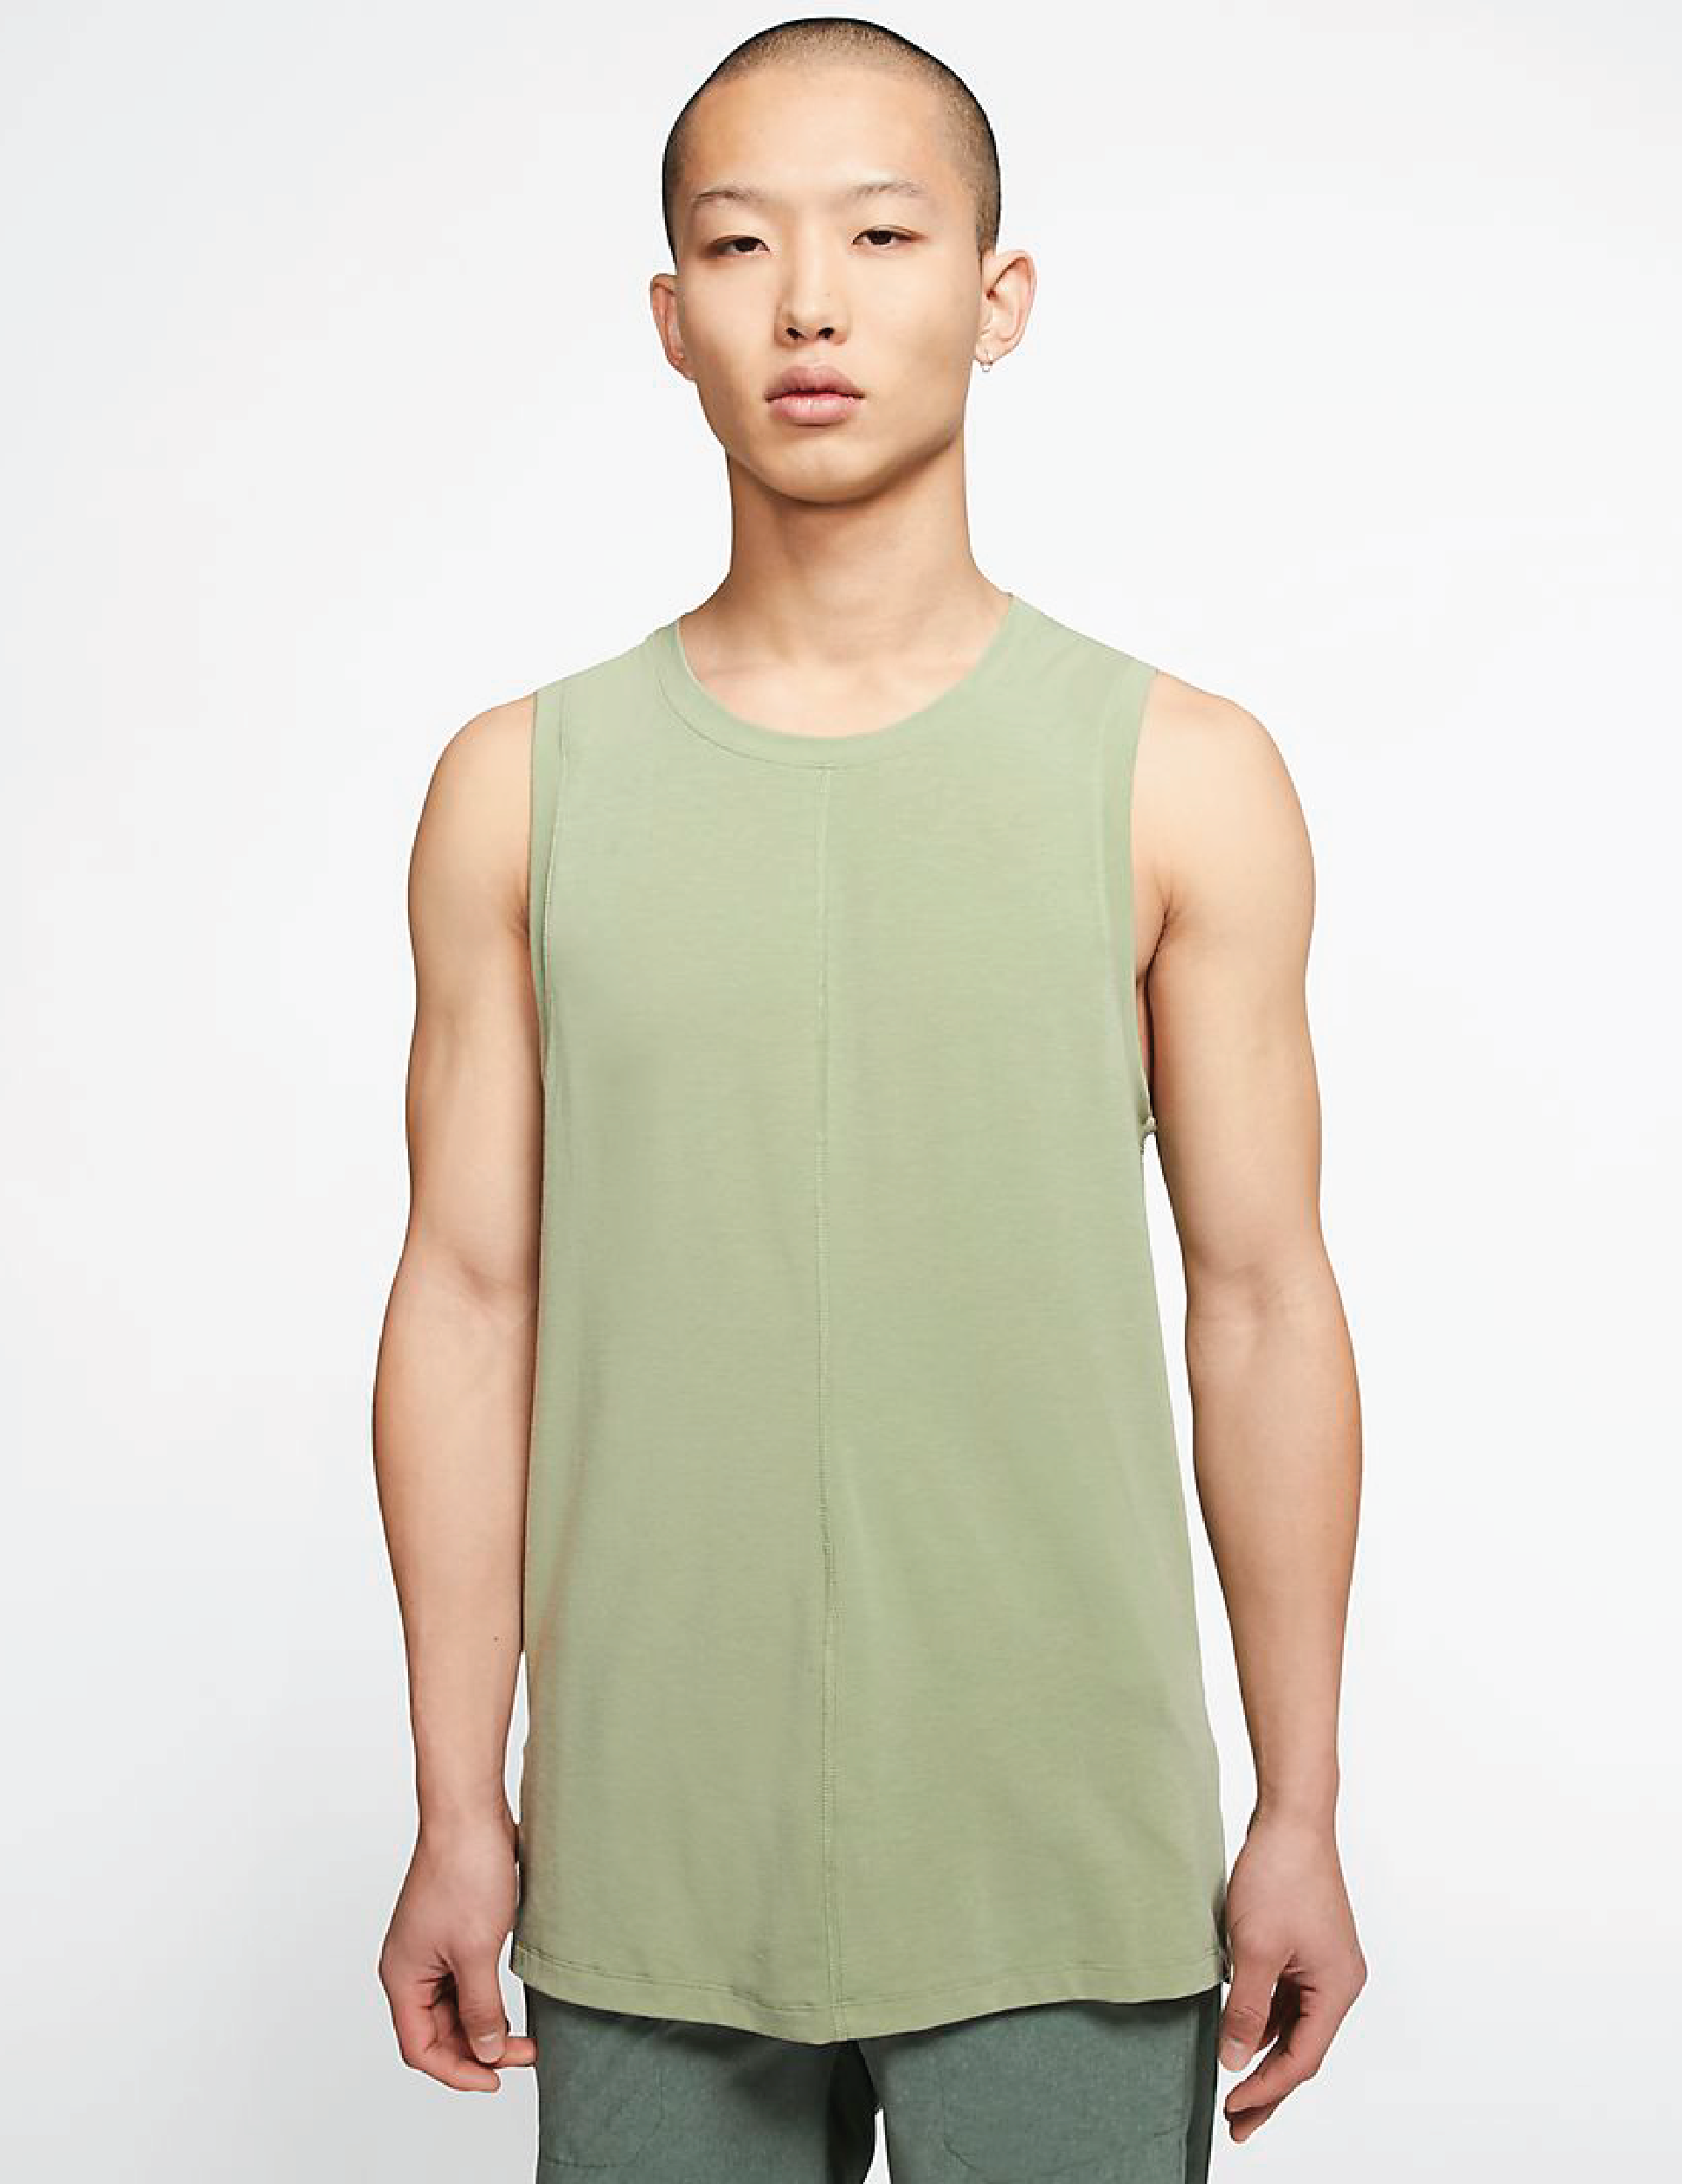 A model wearing a the green, scoop neck, yoga tank